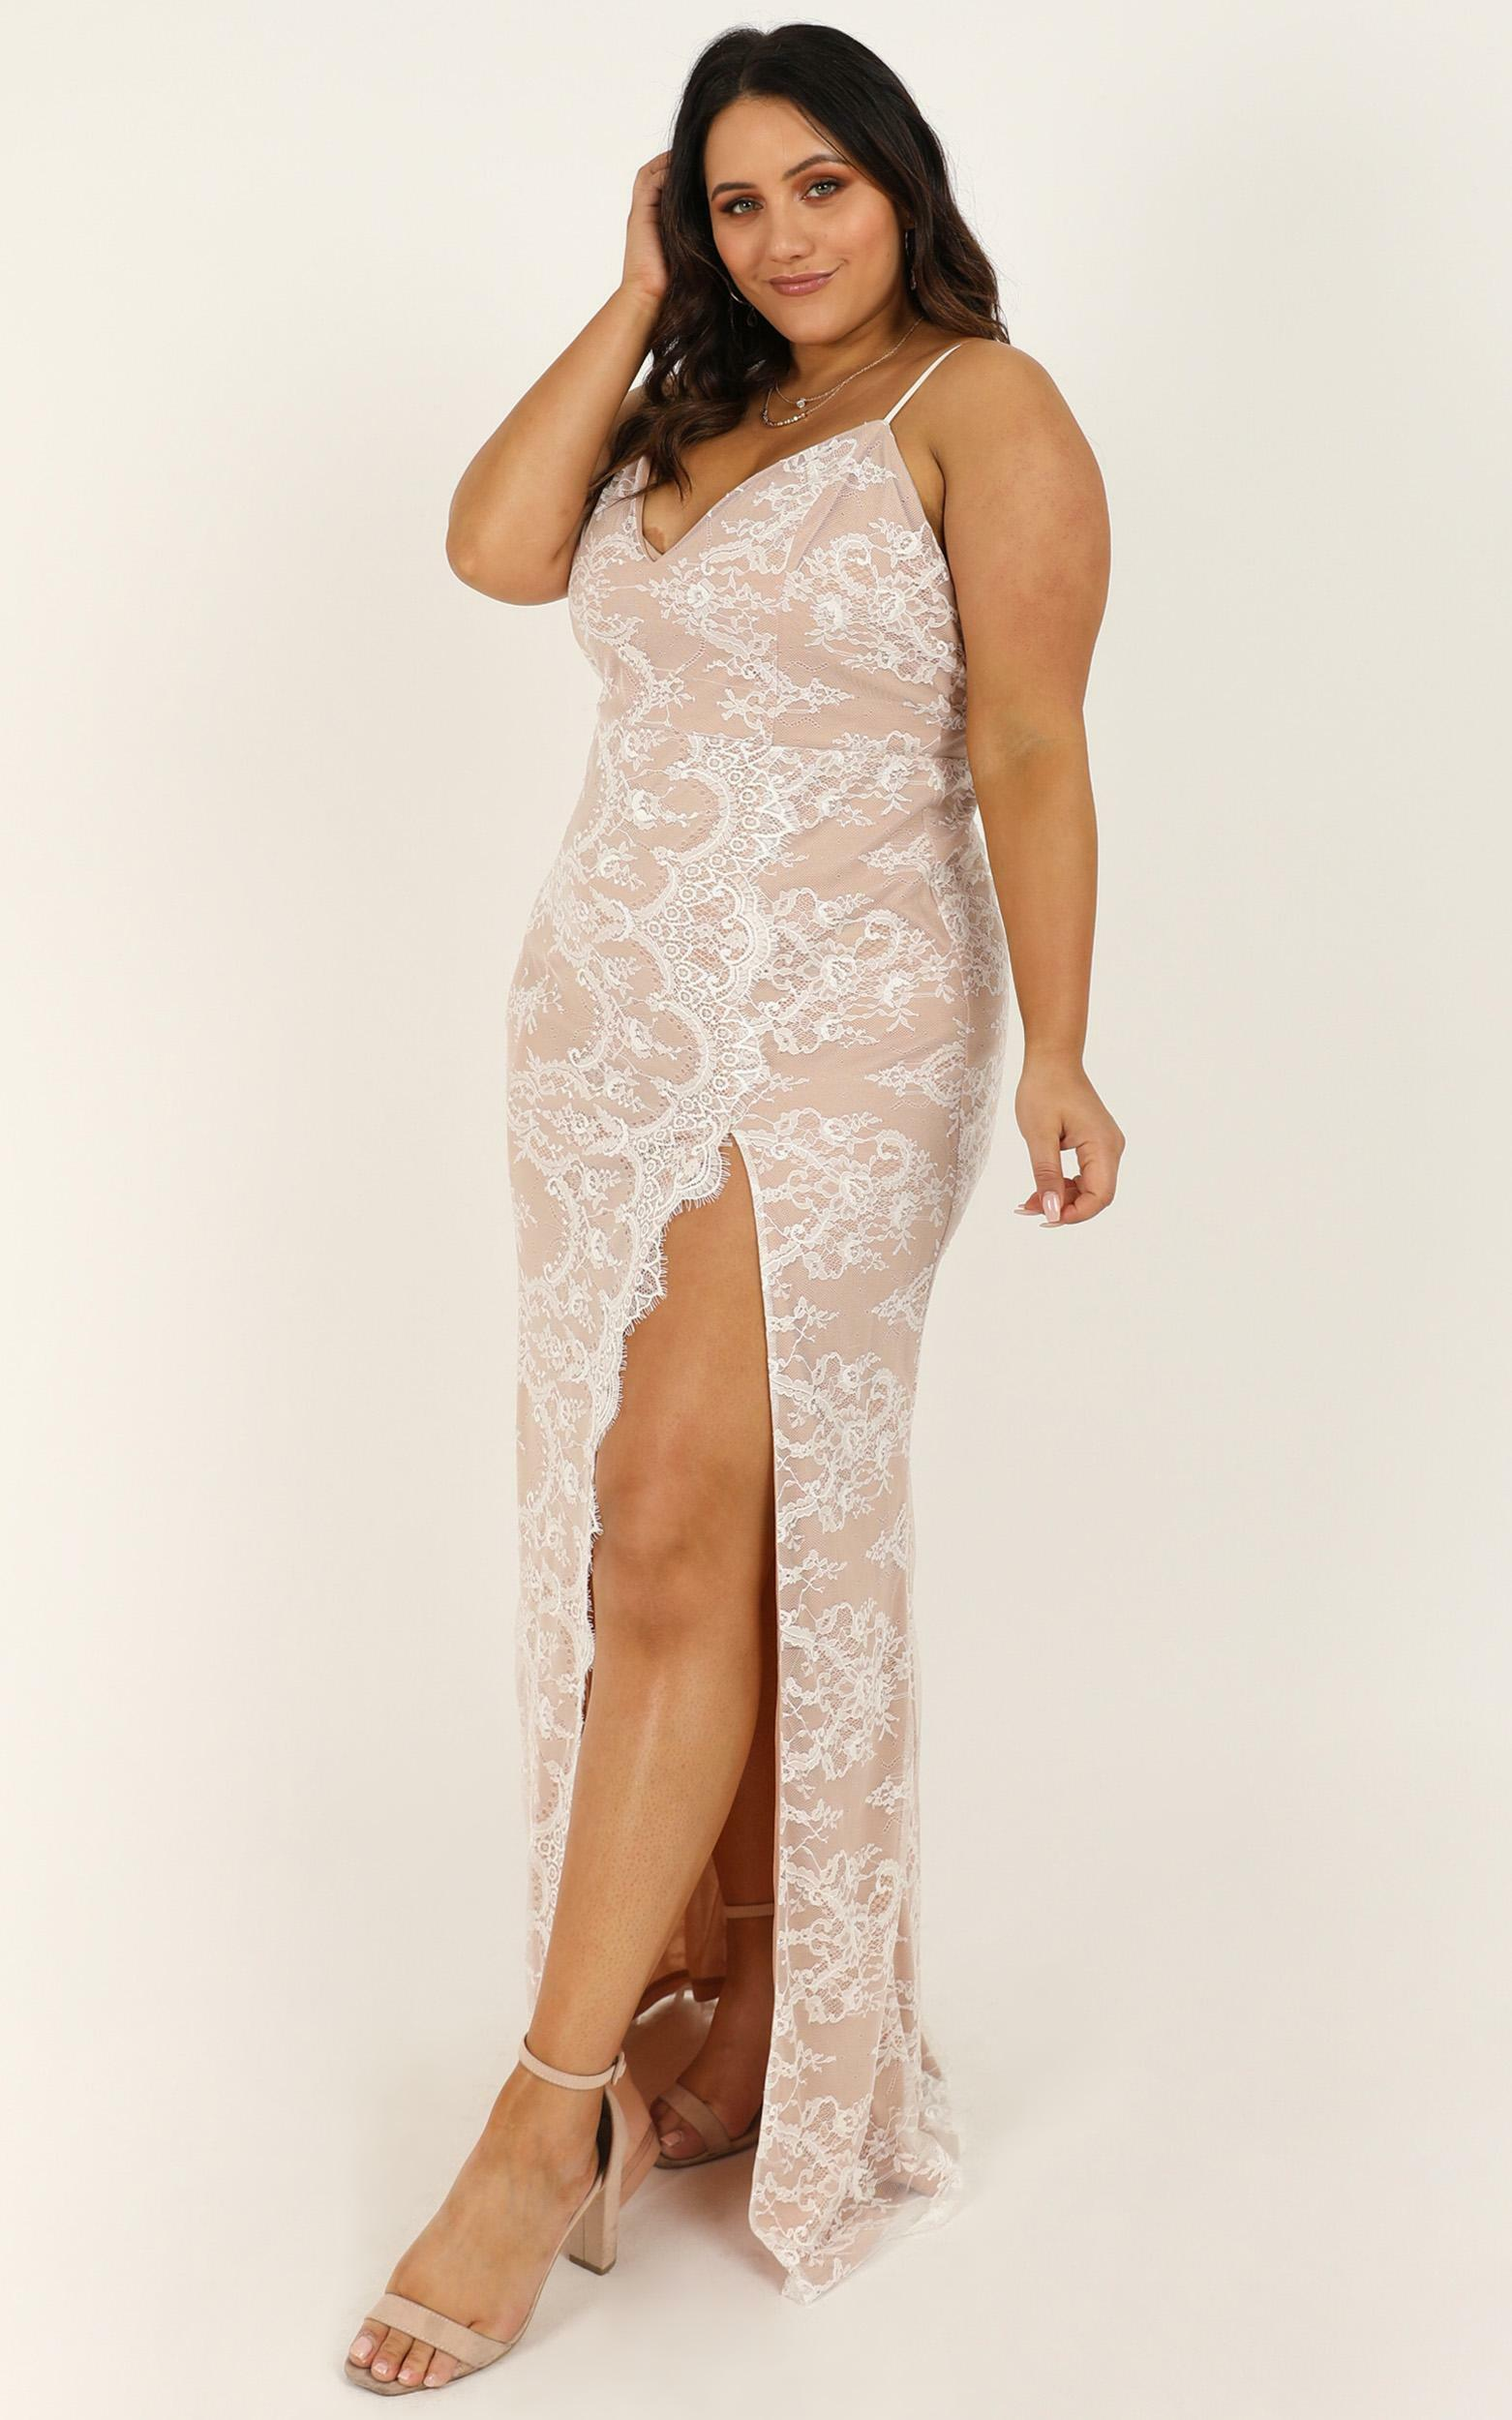 Wrap Me Up In Lace Dress in white lace - 18 (XXXL), White, hi-res image number null